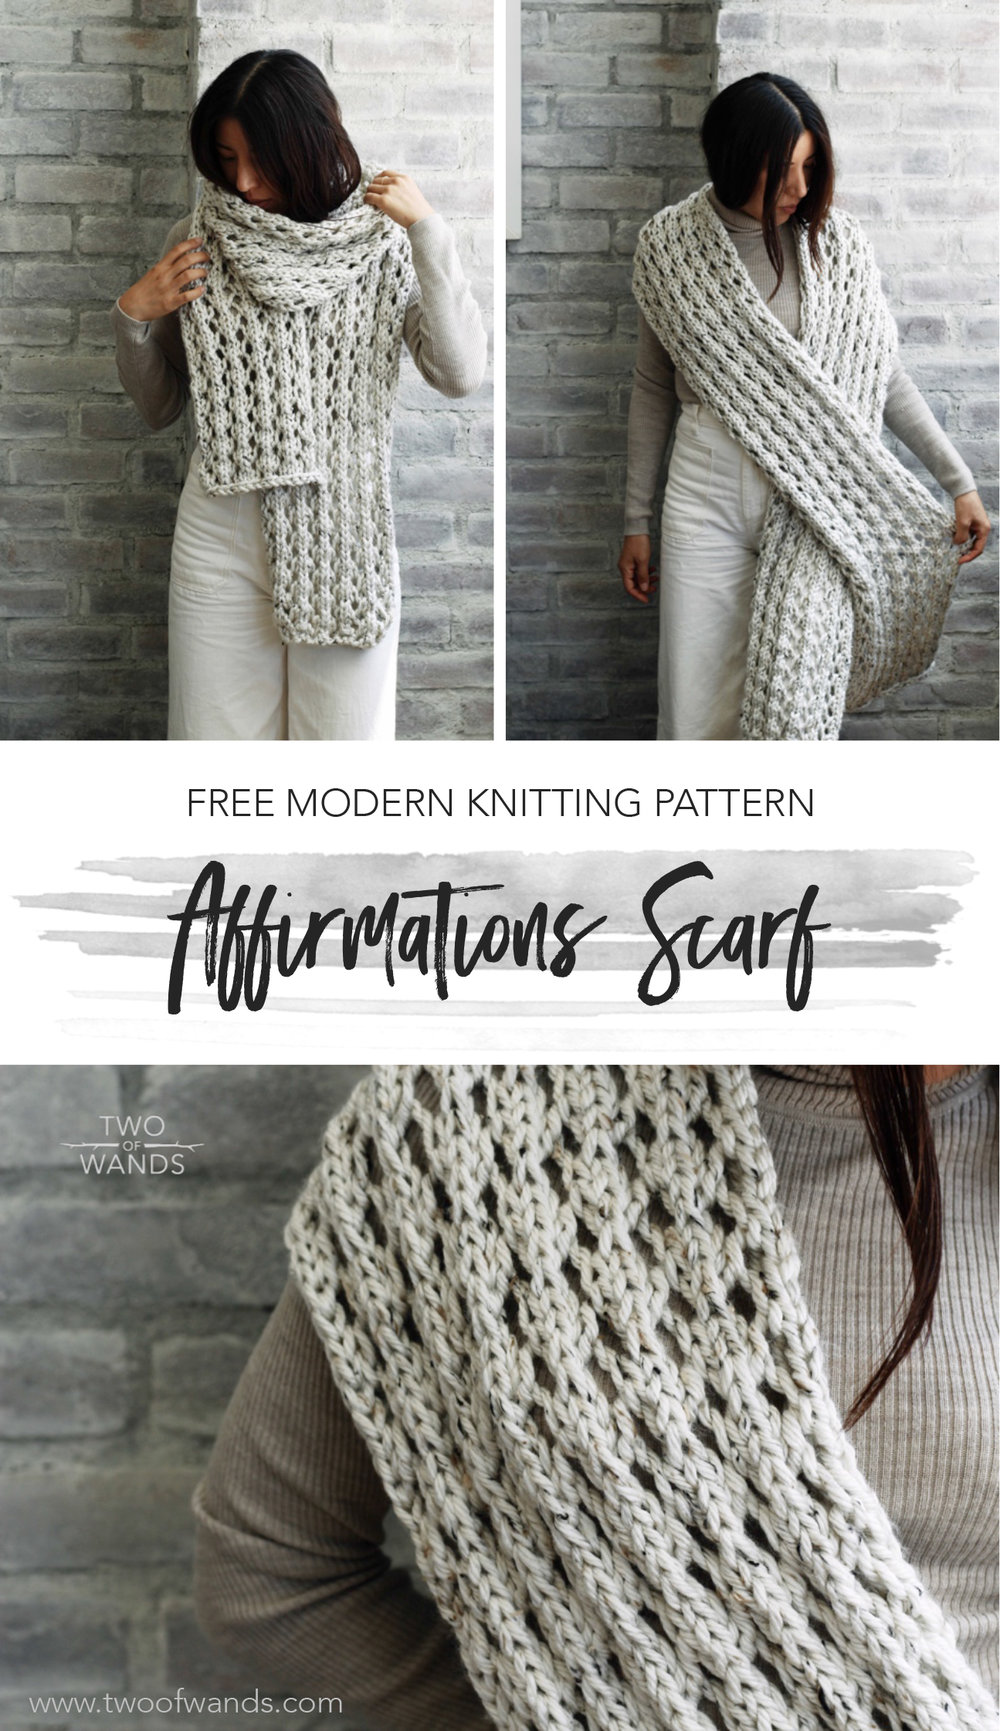 Affirmations Scarf pattern by Two of Wands